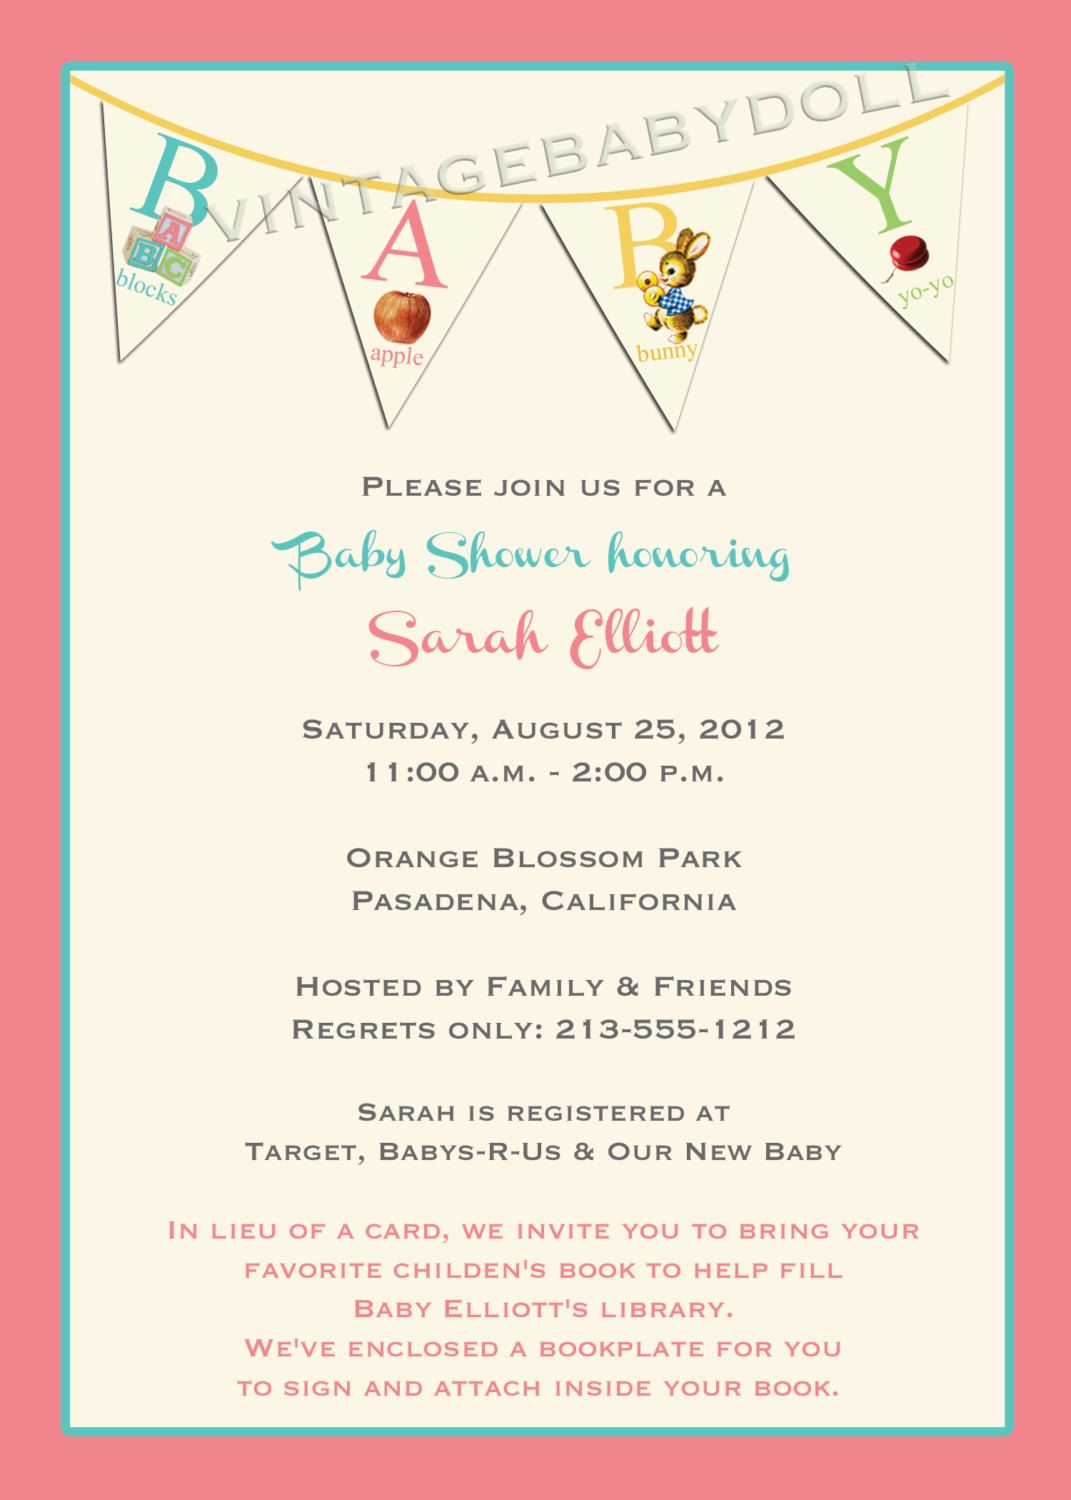 Vintage abc baby shower book plate bunting retro design for a girl items similar to vintage abc baby shower invitation and matching book plate bunting retro design for a girl or boy i design you print on etsy filmwisefo Gallery